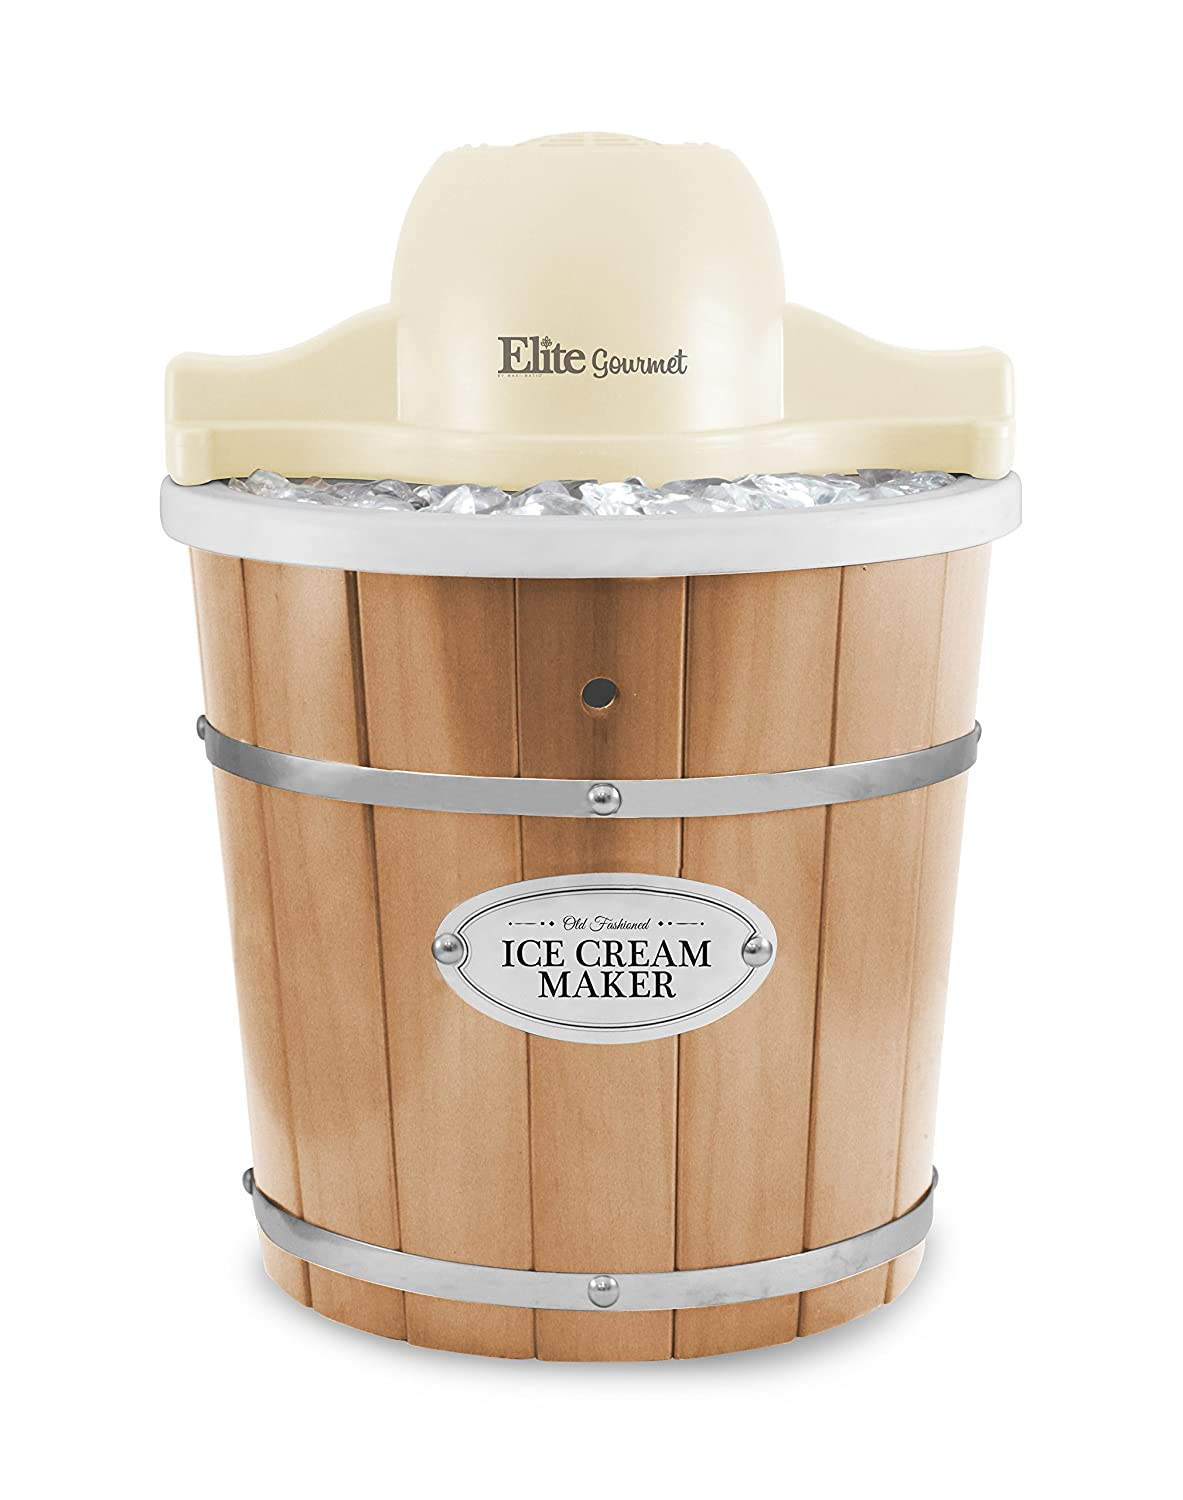 Elite Gourmet EIM-924L 4 Quart Old Fashioned Bucket Electric Ice Cream Maker, One Size, Pine